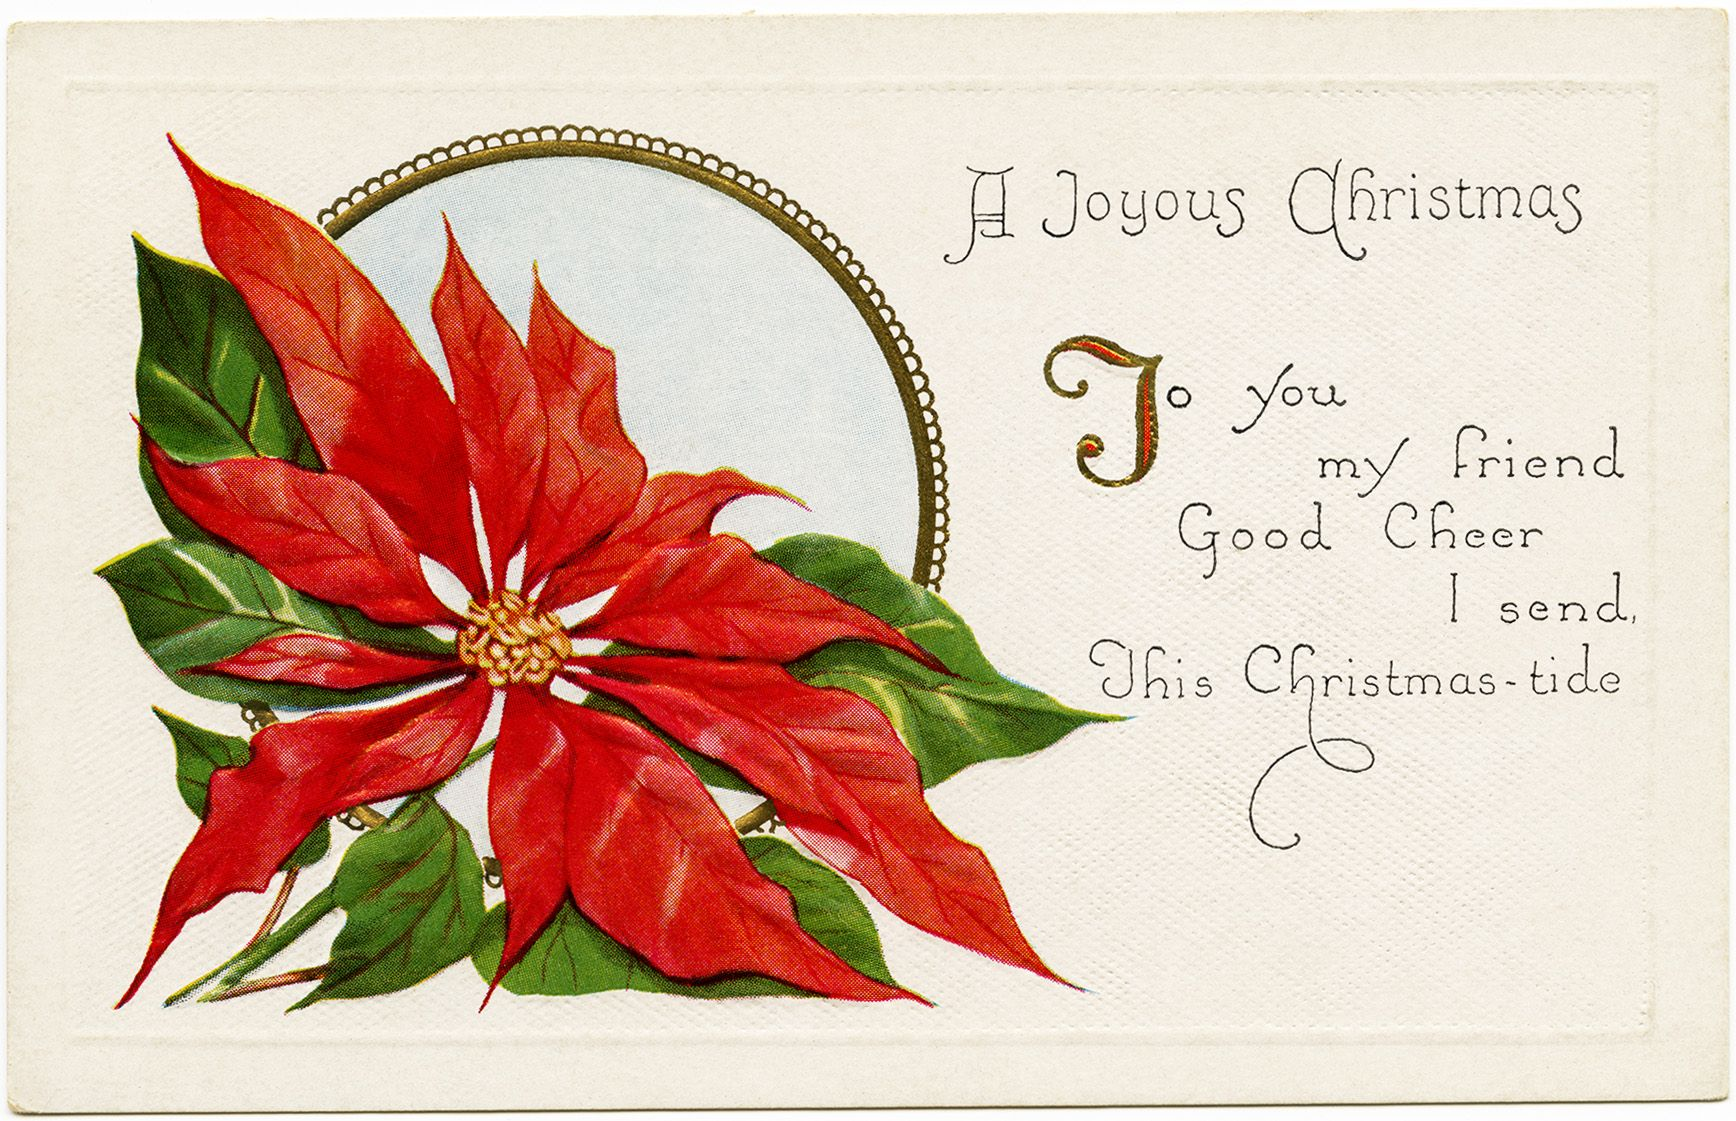 Christmas vintage postcard poinsettia illustration old fashioned christmas vintage postcard poinsettia illustration old fashioned christmas card free holiday graphic kristyandbryce Image collections